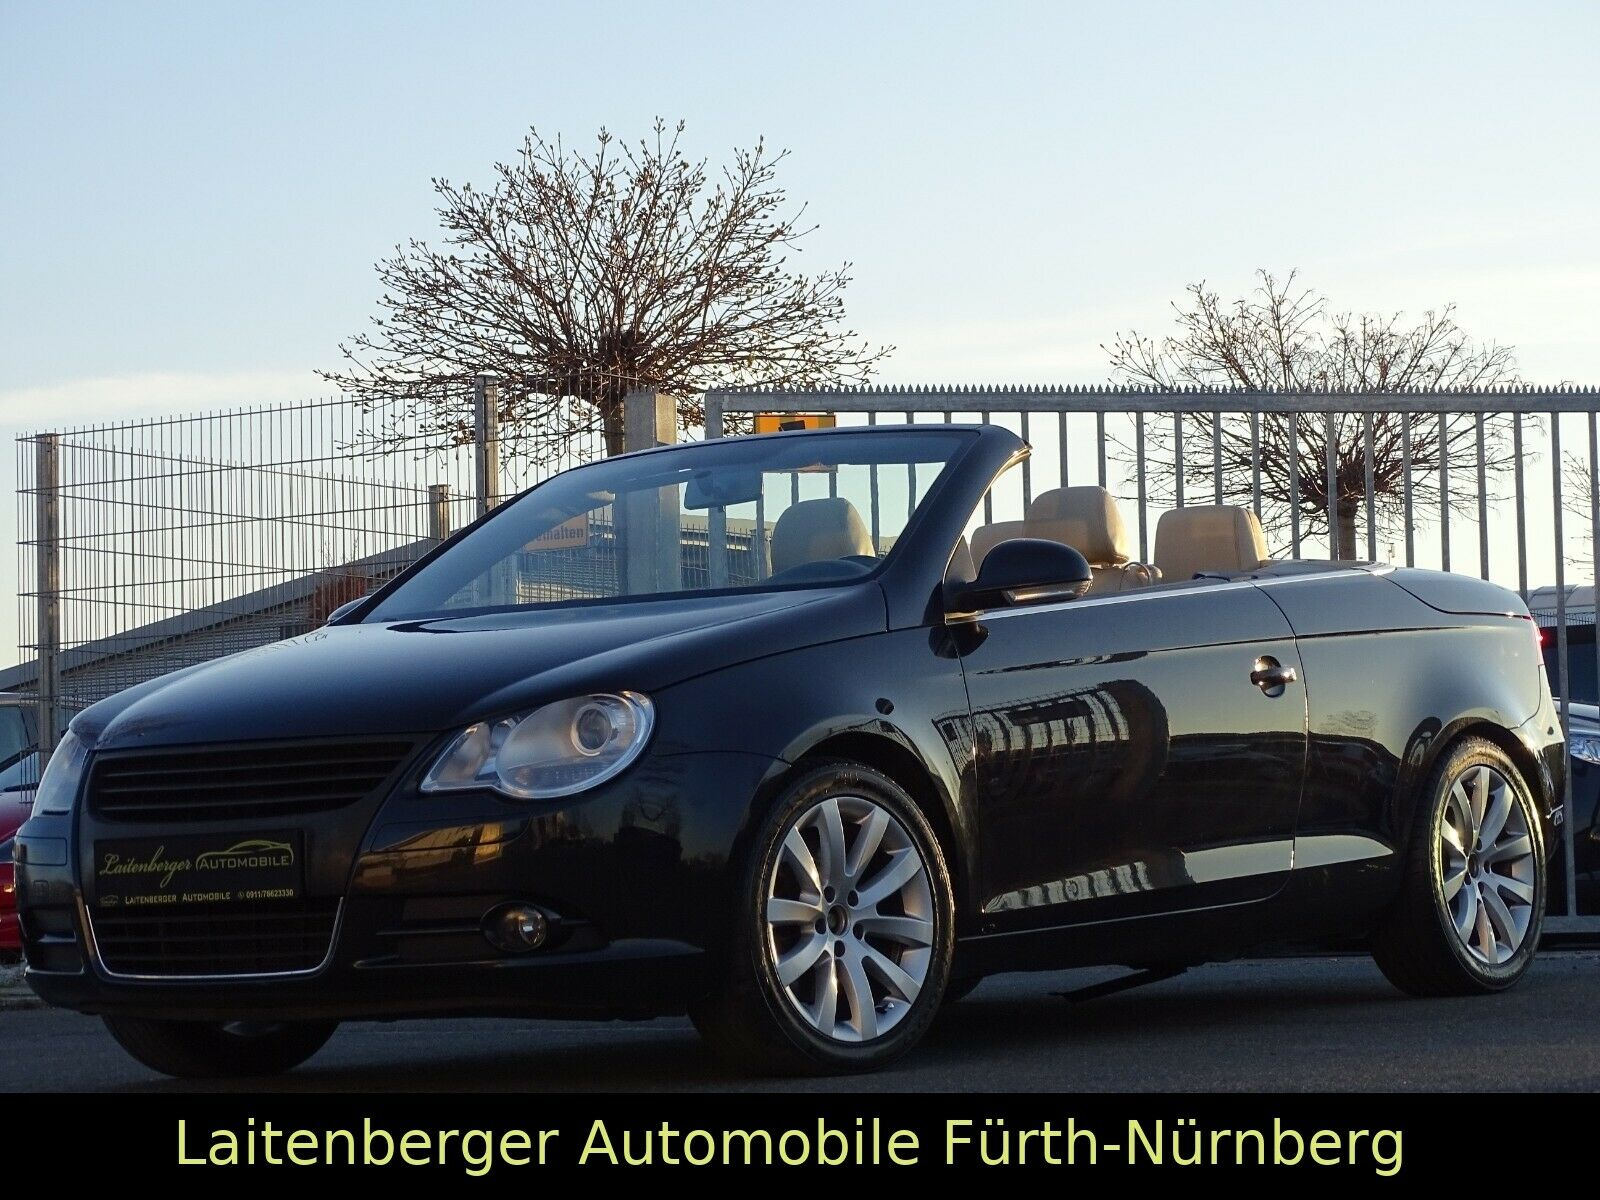 VW Eos 2.0 Turbo Highline*KLIMA*NAVI*LEDER*SHZ*PDC